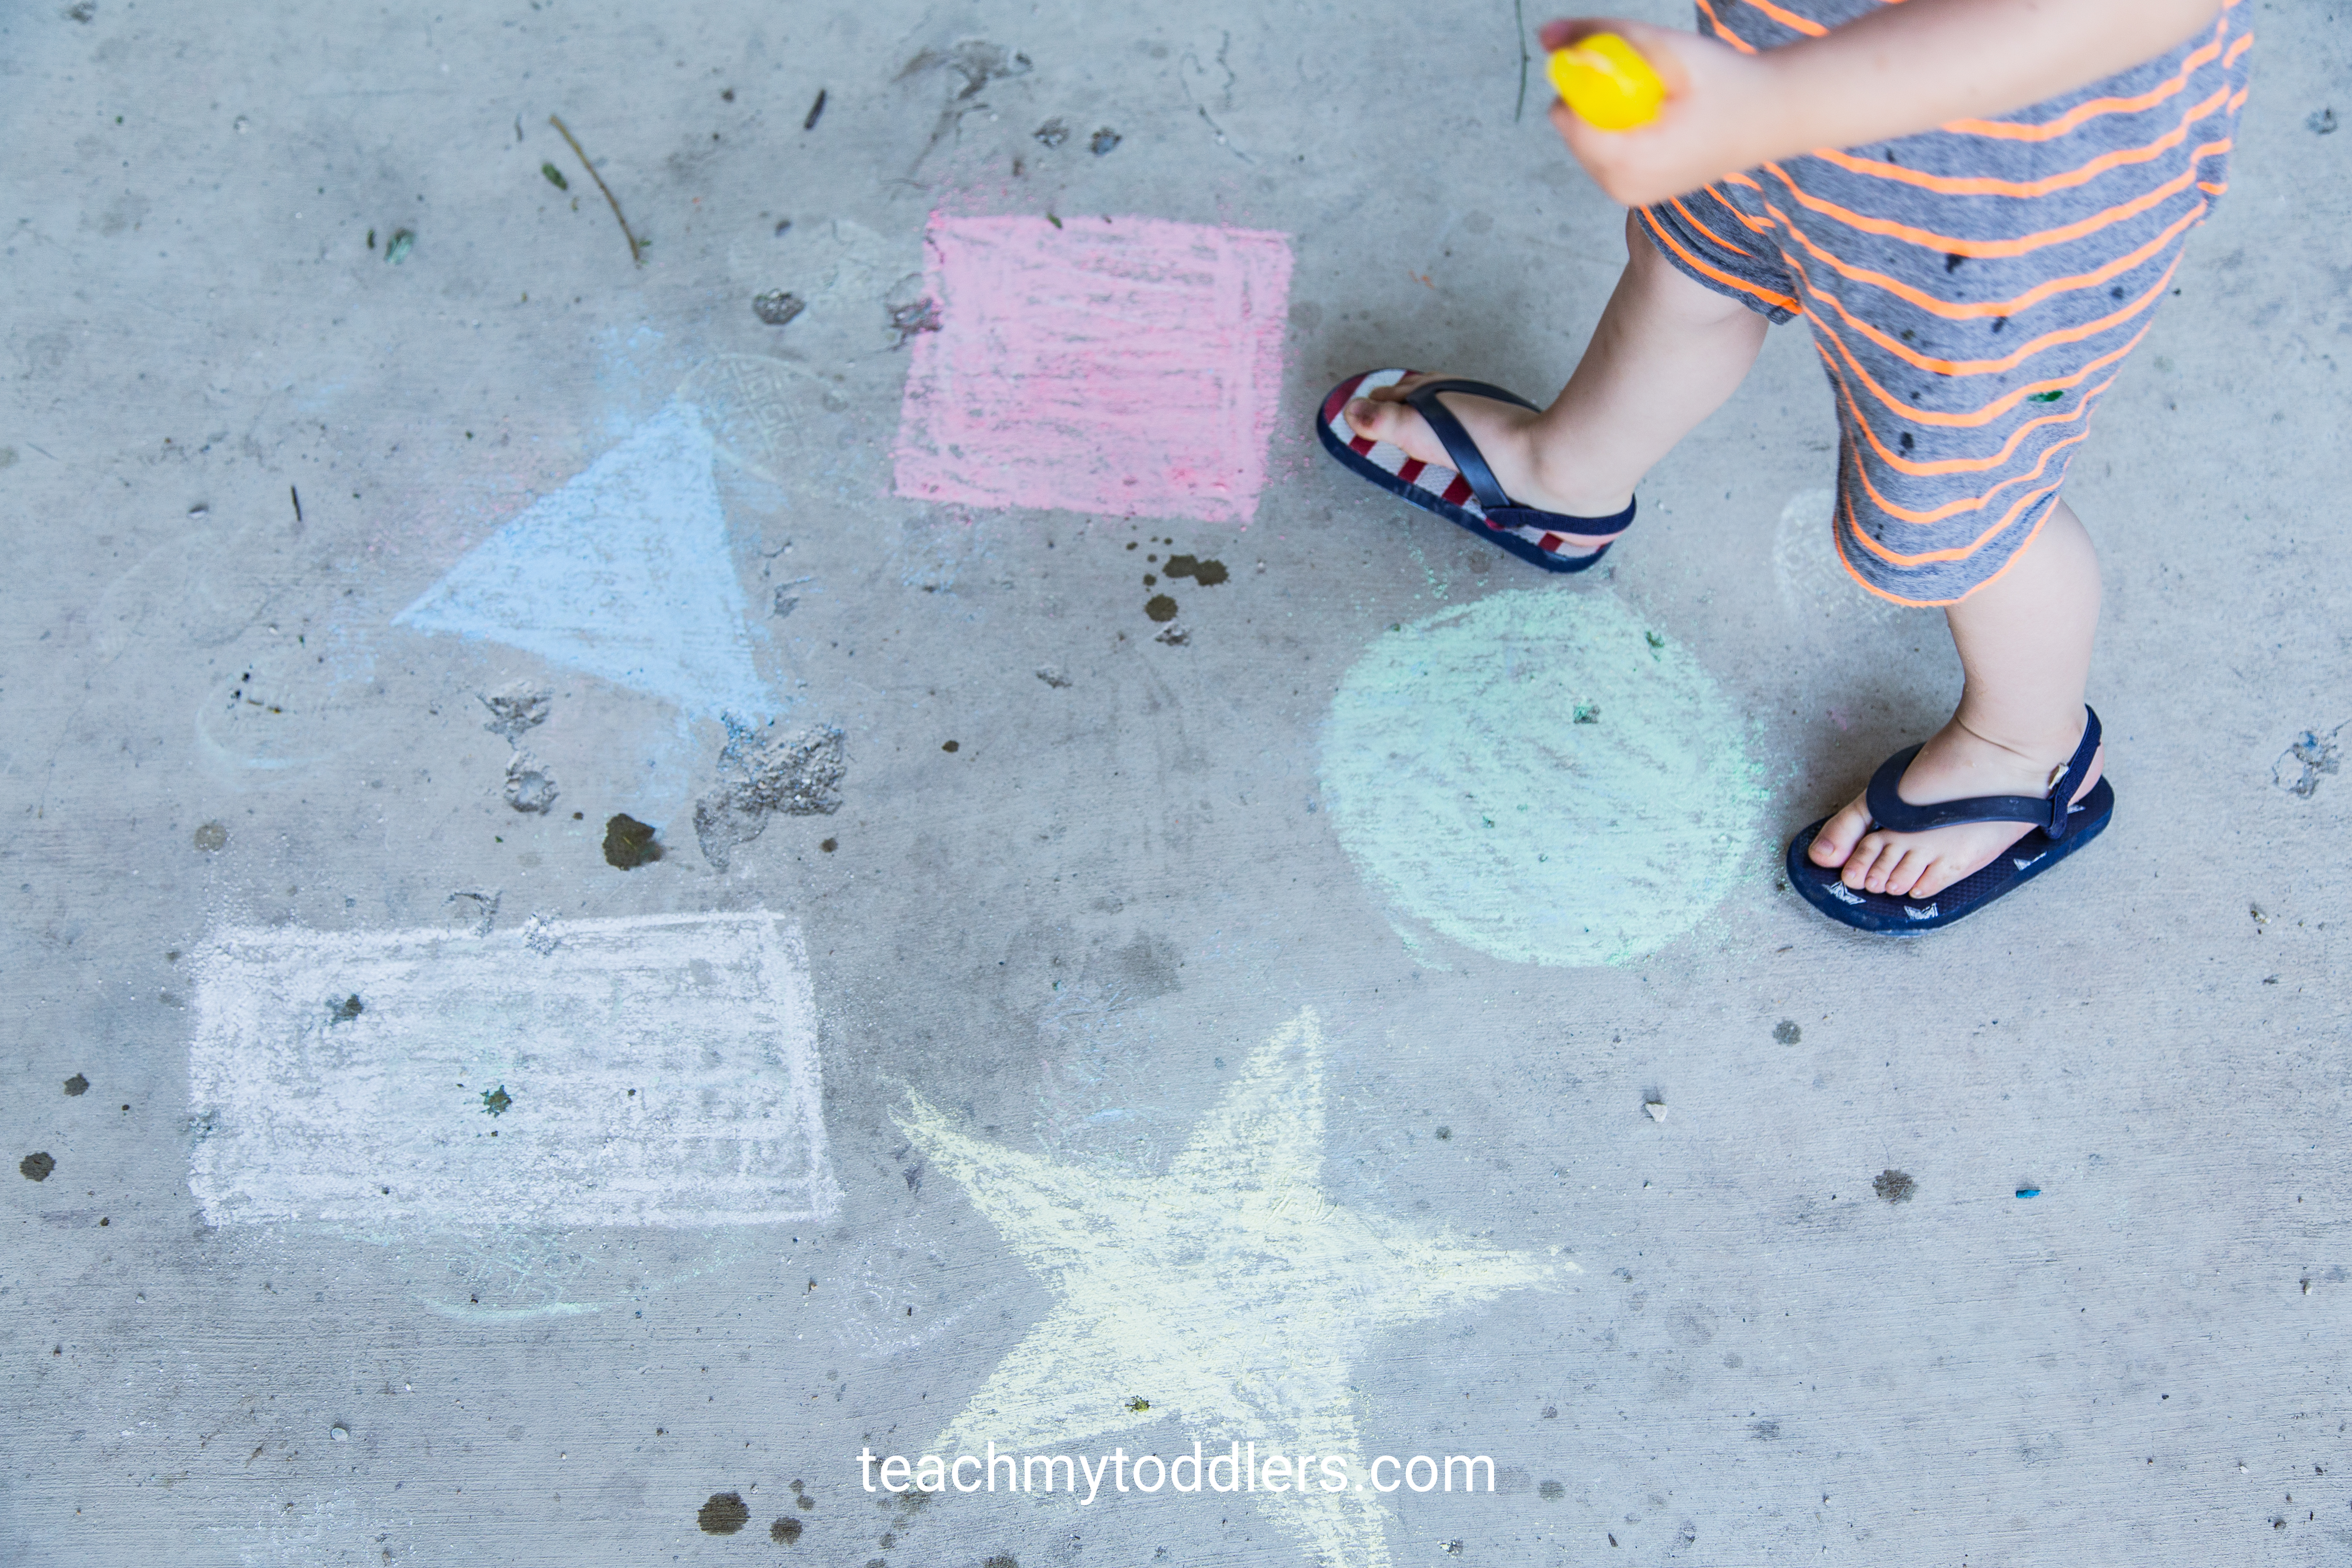 Use this fun idea to teach your toddlers gross motor skills by jumping on chalk shapes